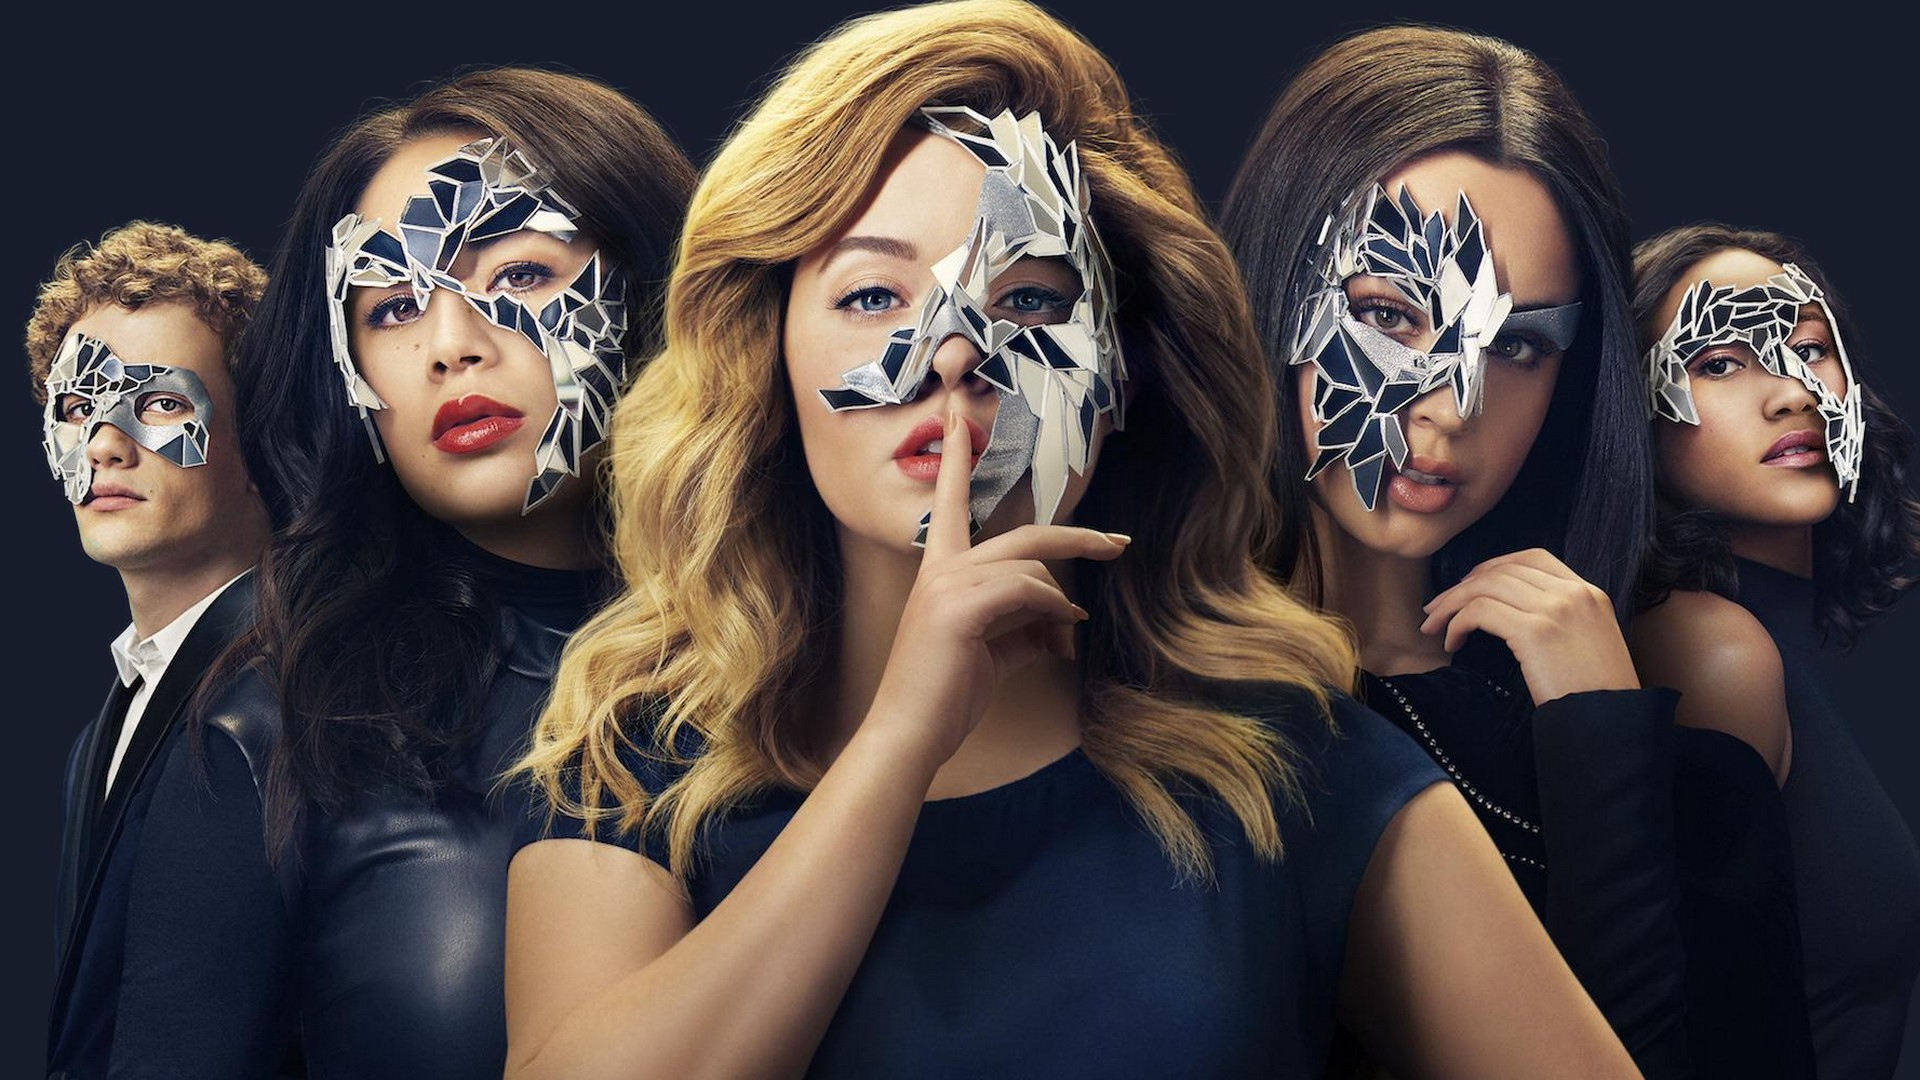 Trailer van Pretty Little Liars: The Perfectionists